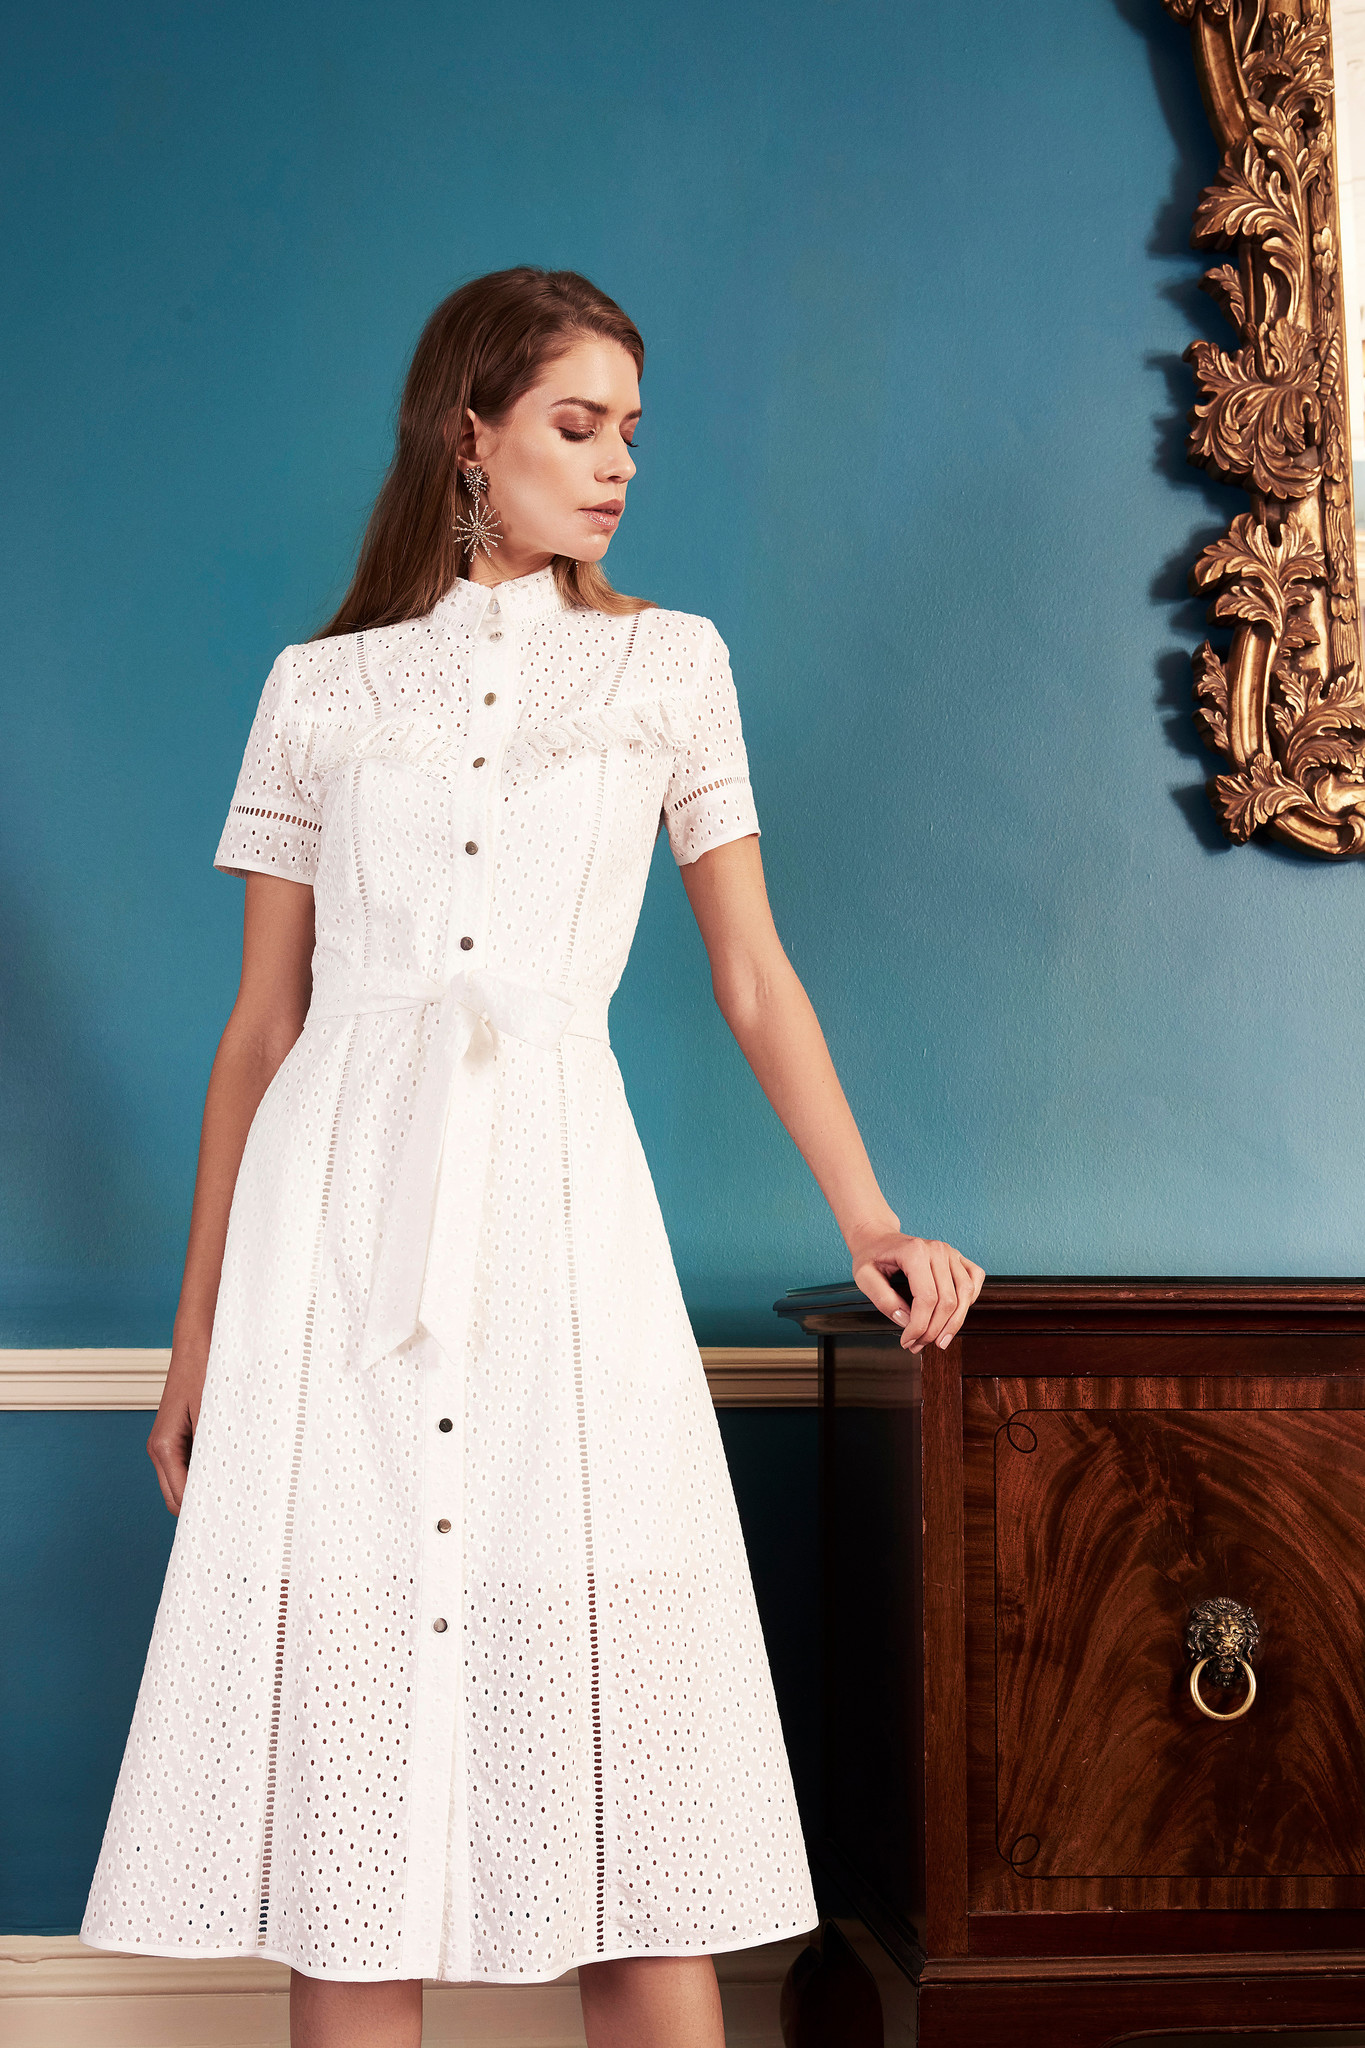 Romina broderie Anglaise cotton dress